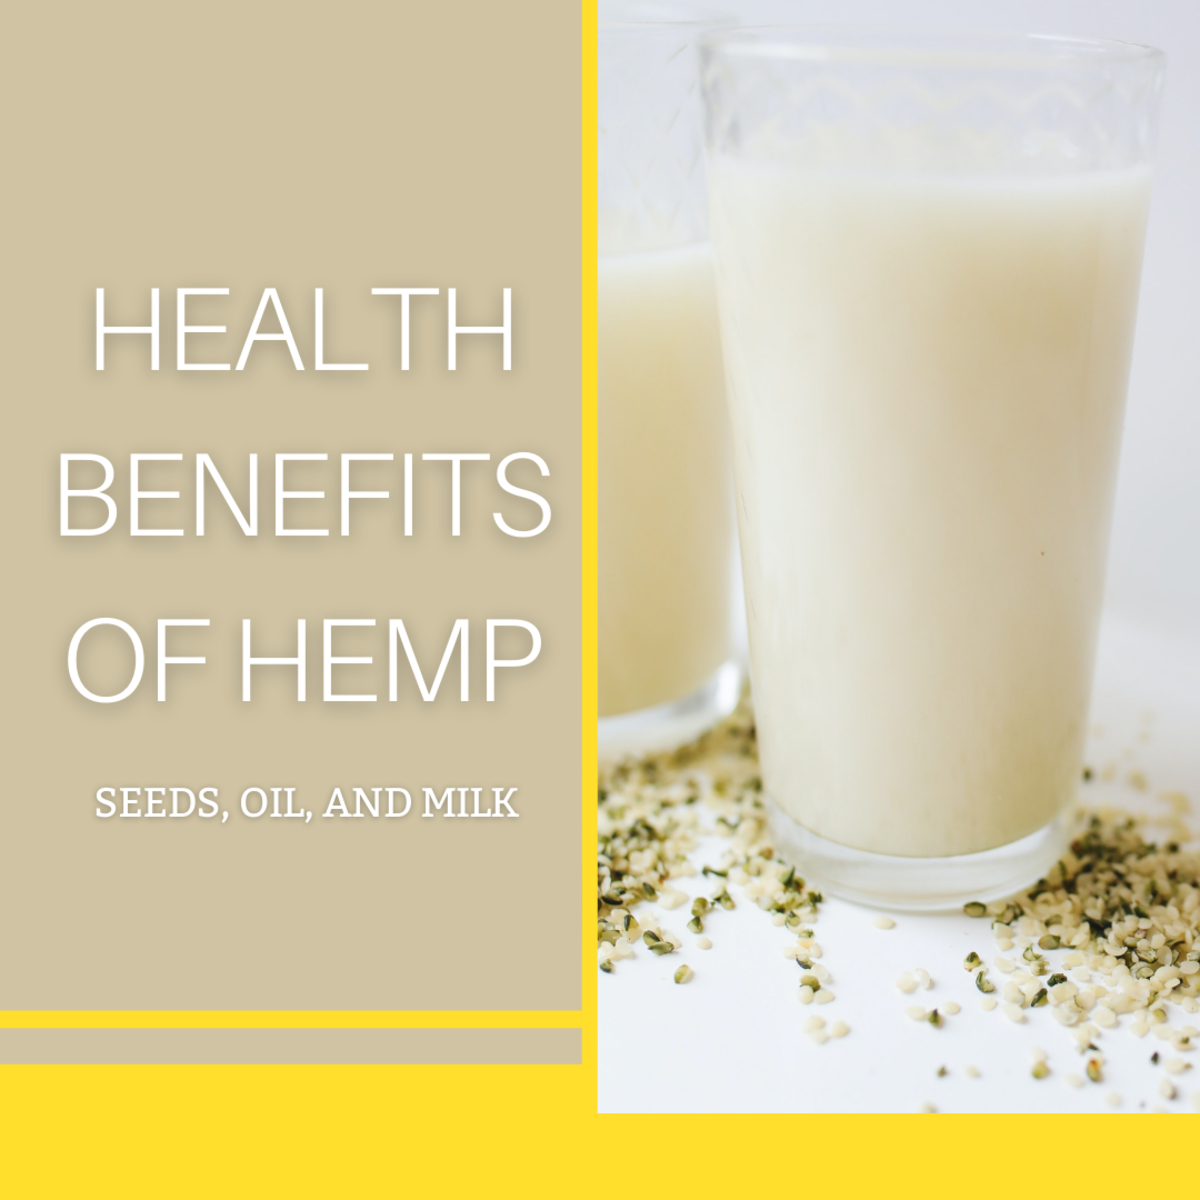 Hemp seeds, milk, and oil are versatile and nutritious.